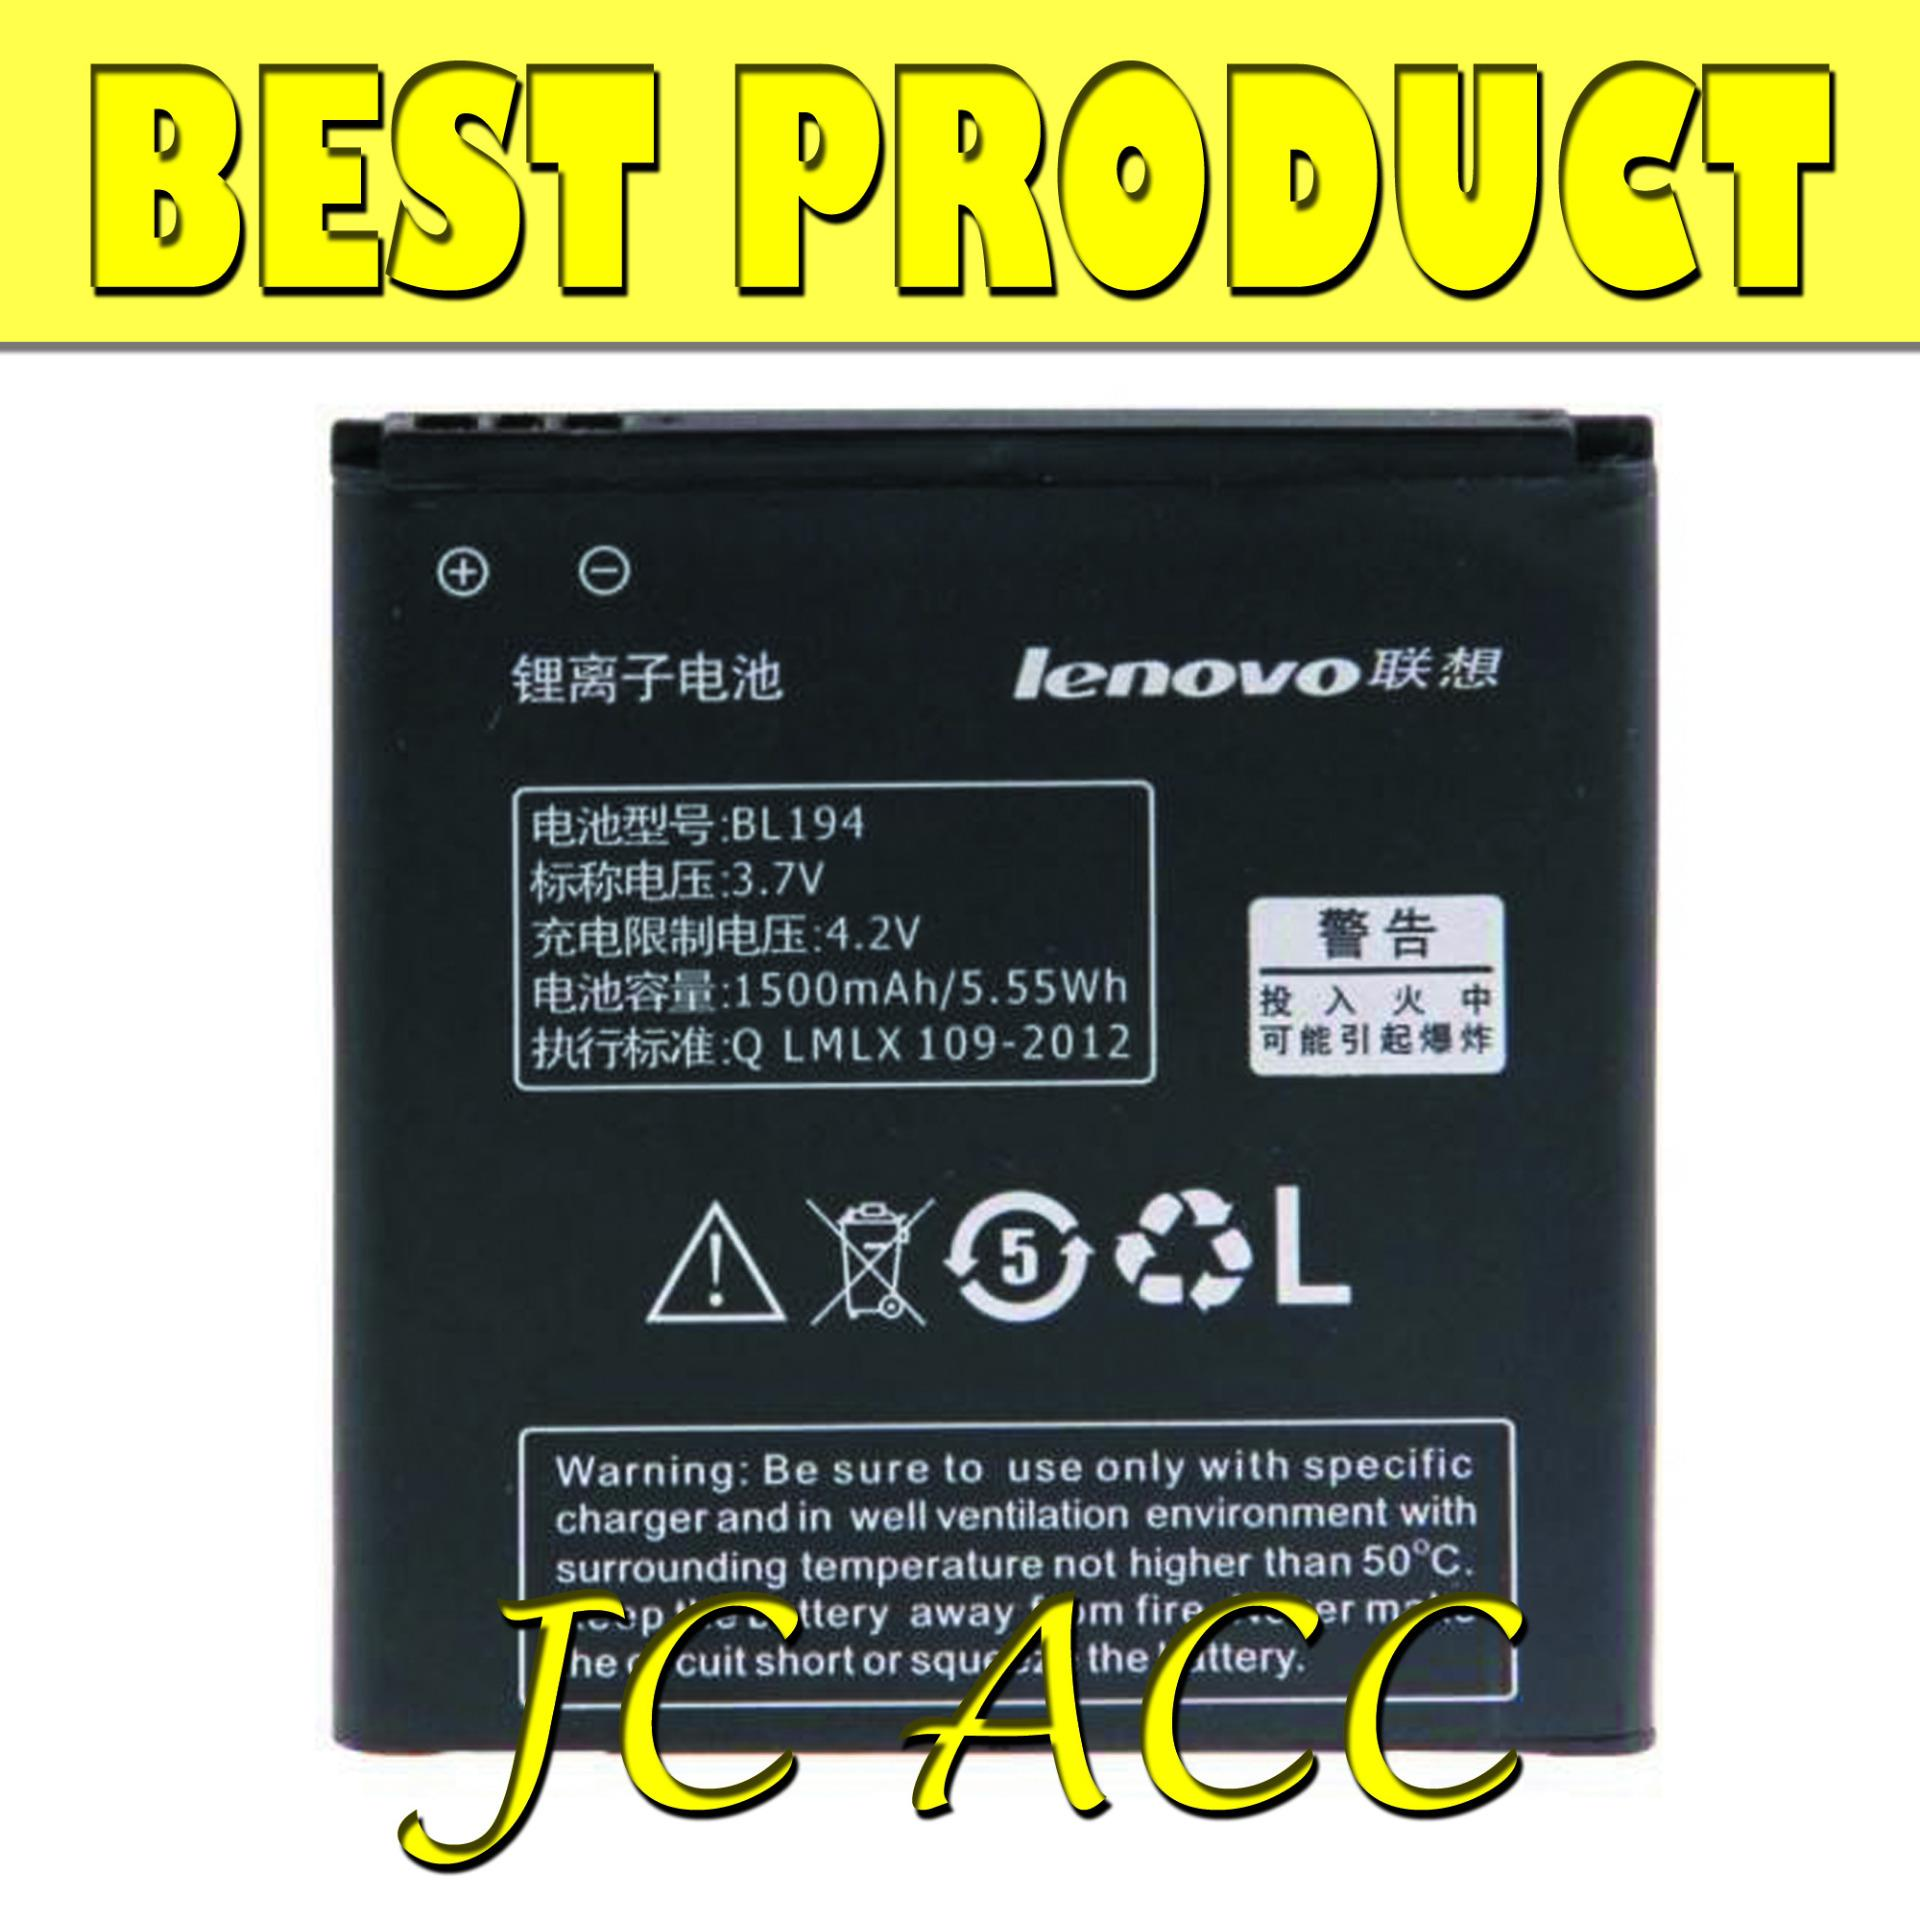 Lenovo Original 100% BL194 Baterai for Lenovo A288 / A298T / A360 / A370 / A660 (BEST PRODUCT)